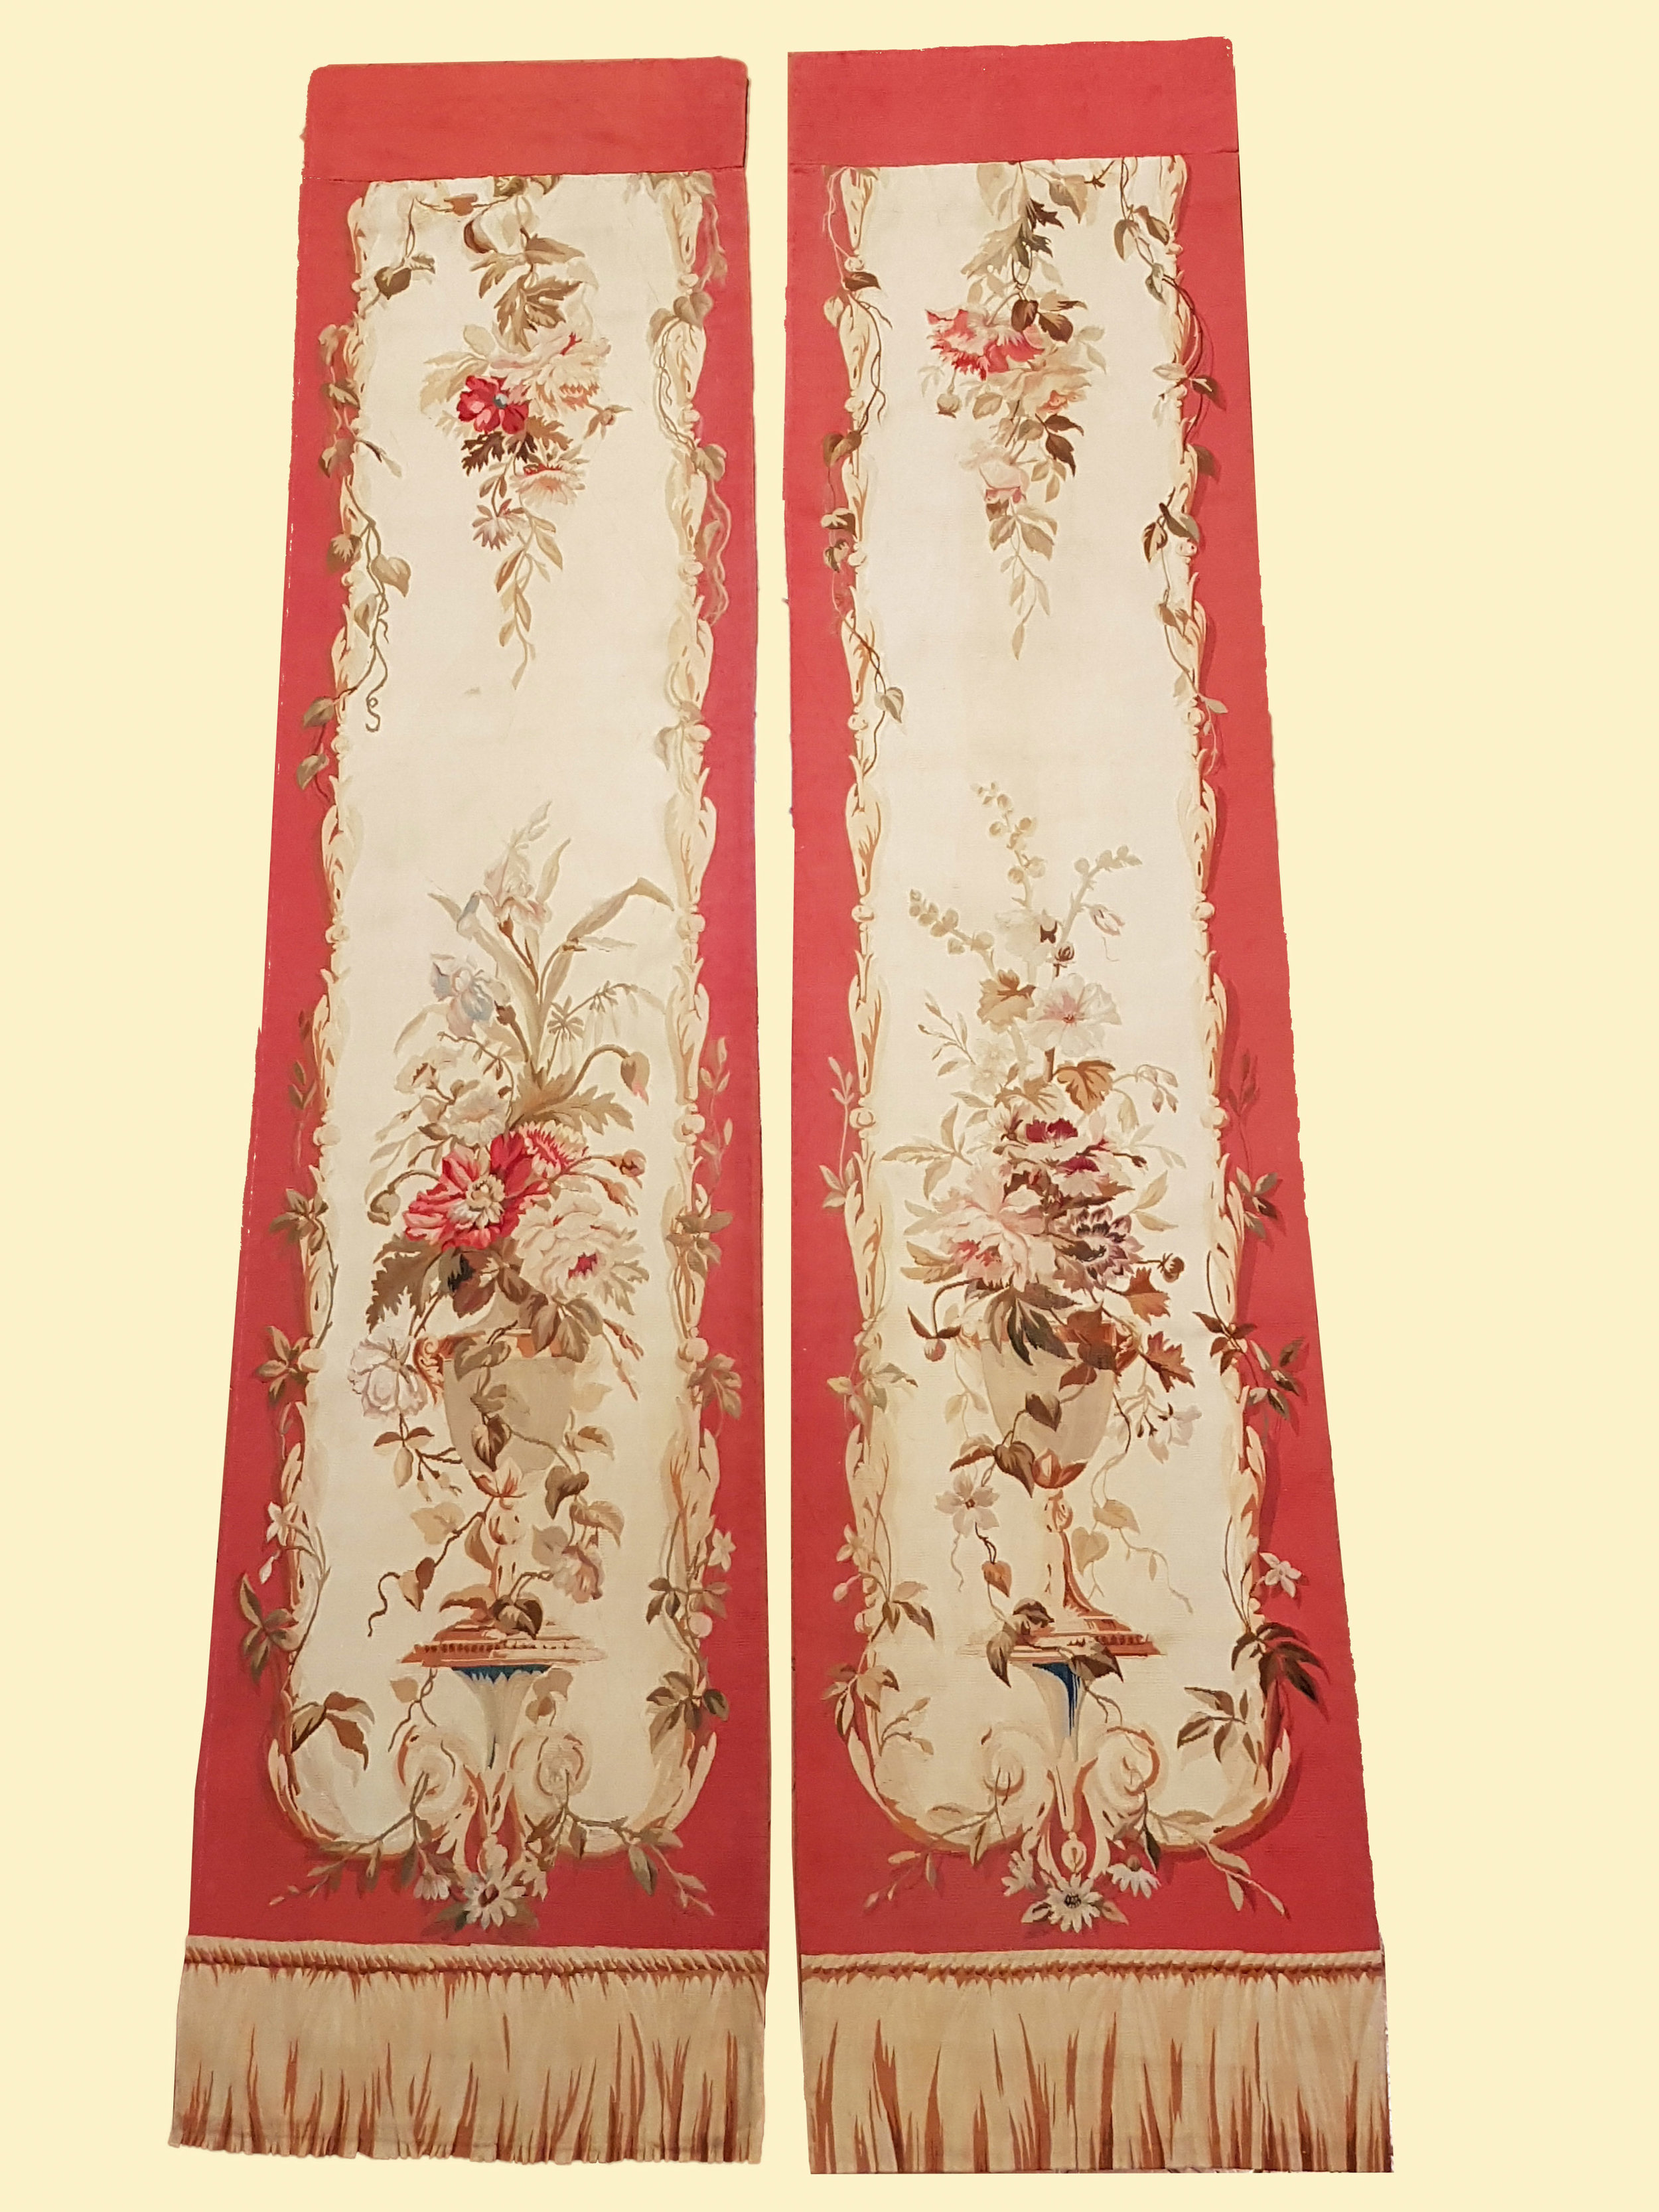 """""""Coppia Pannelli""""""""Pair of panels"""" - Aubusson secolo XIX Arazzo, trama di lana e setaAlt 262cm, largh 50cm____________________Aubusson 19th centuryWool and silk tapestryHigh 8ft 9in, wide 20in>>>Click the image to enlarge"""